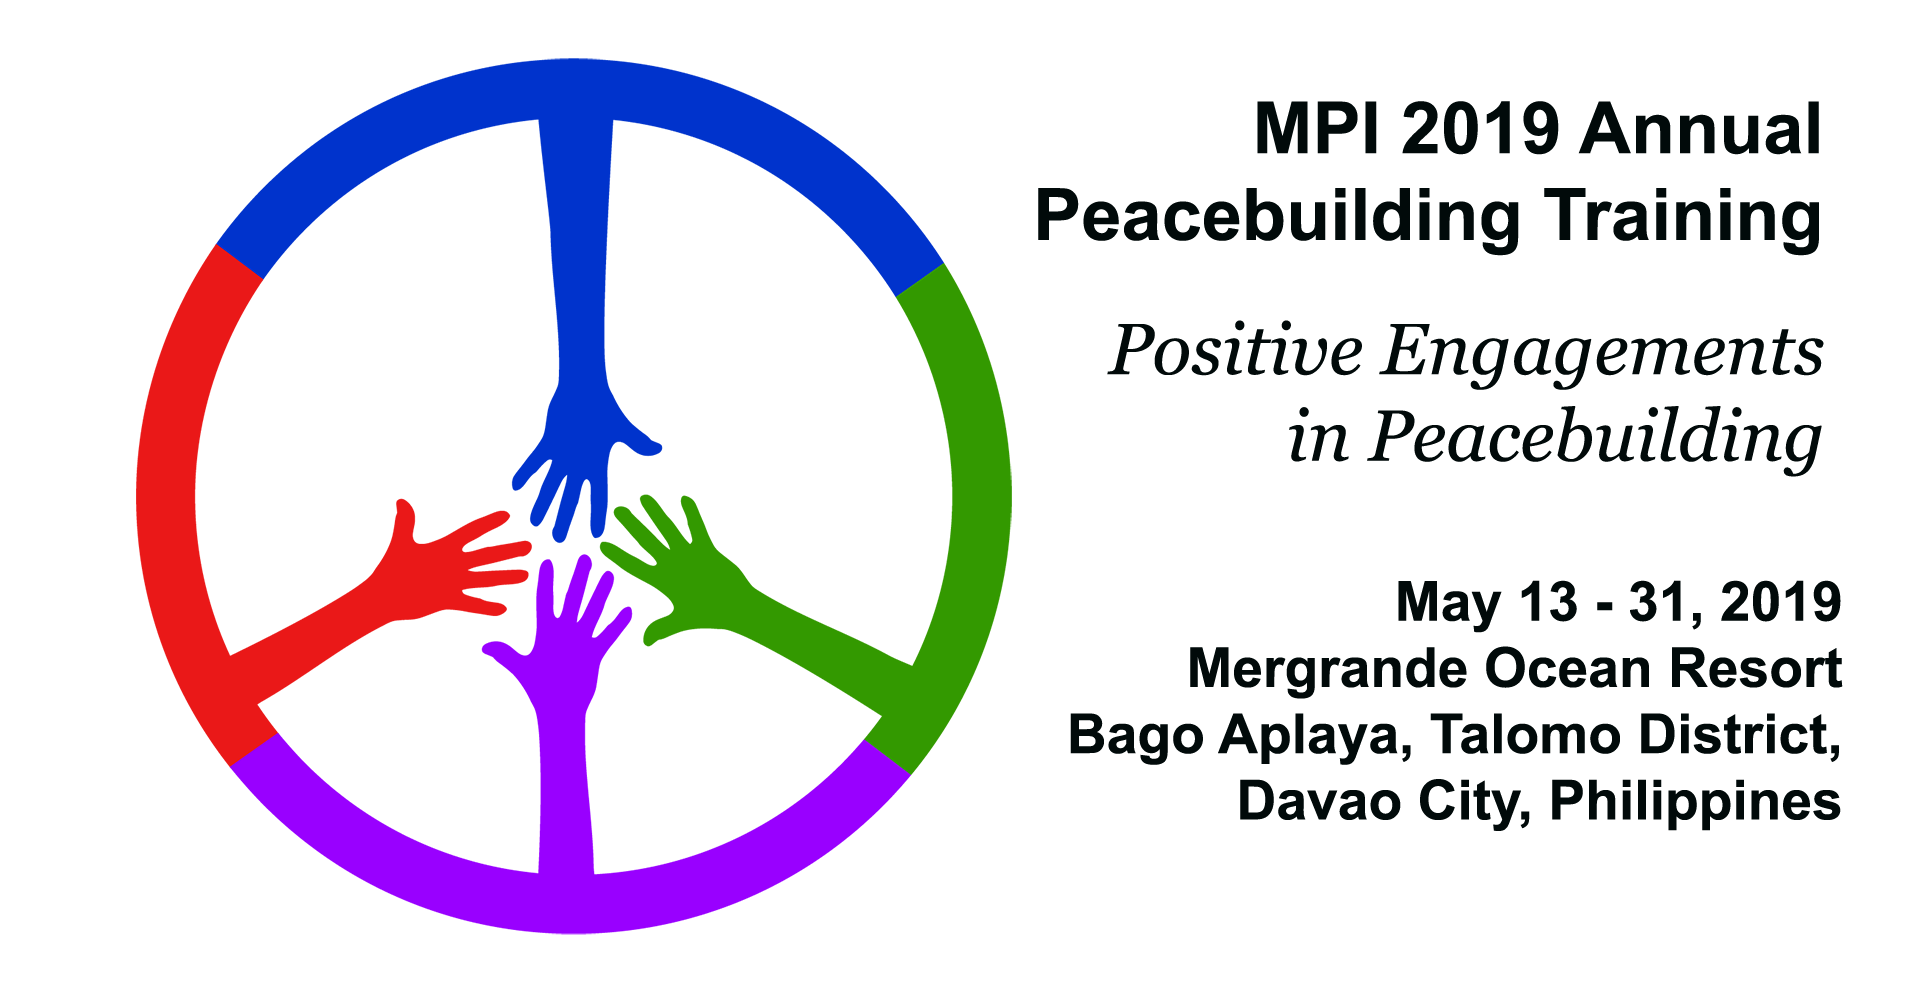 MPI 2019 Logo colored hands forming peace sign